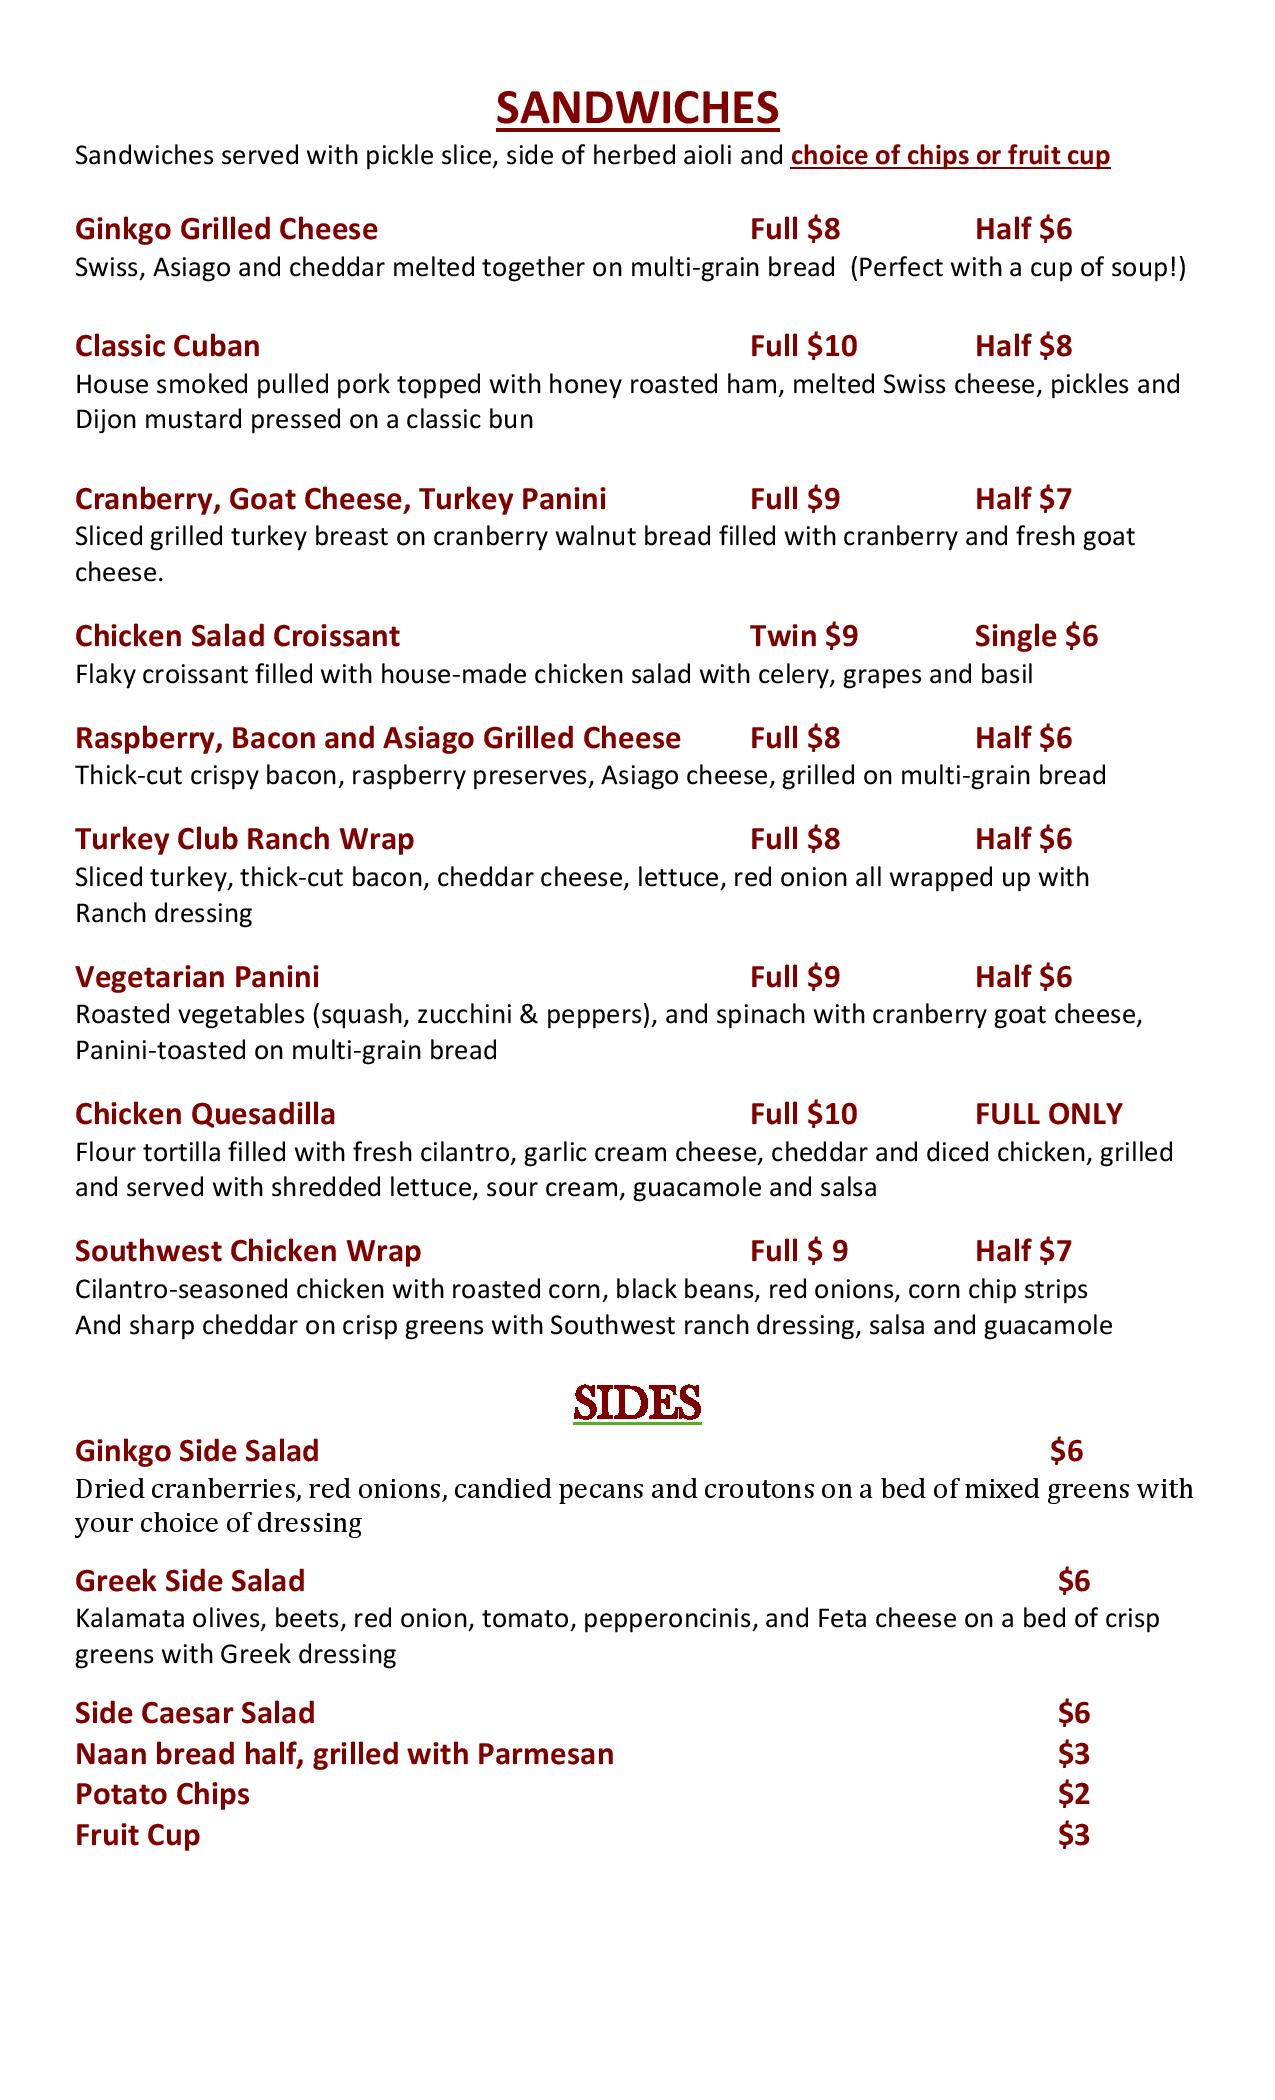 FALL 2018 LUNCH MENU-page-002.jpg